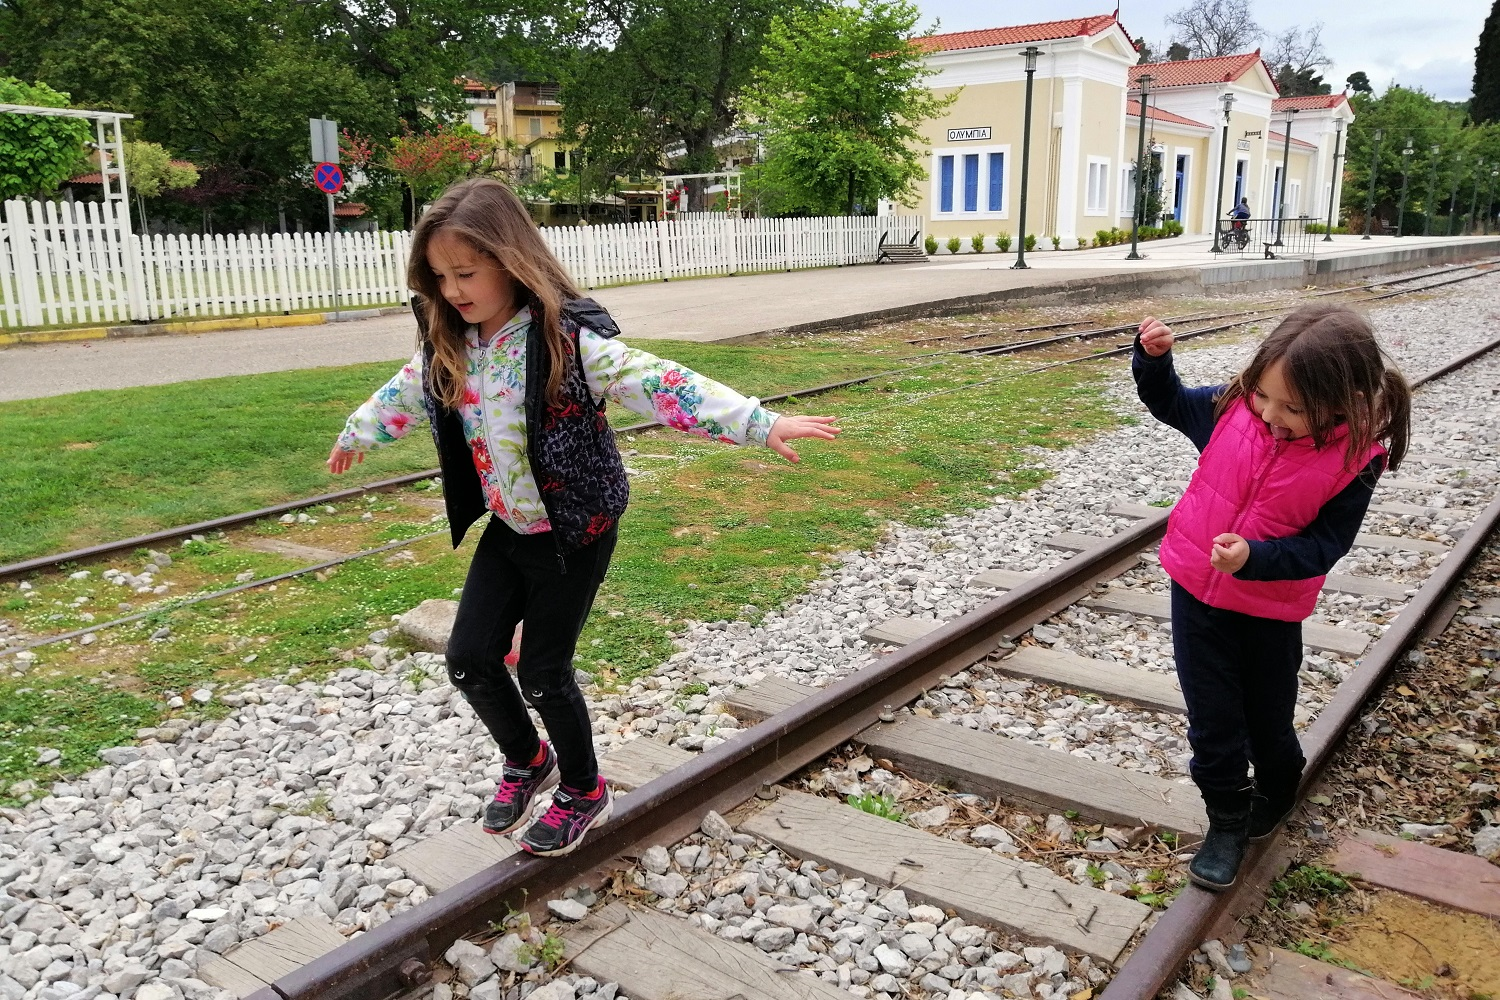 ancient olympia kids train